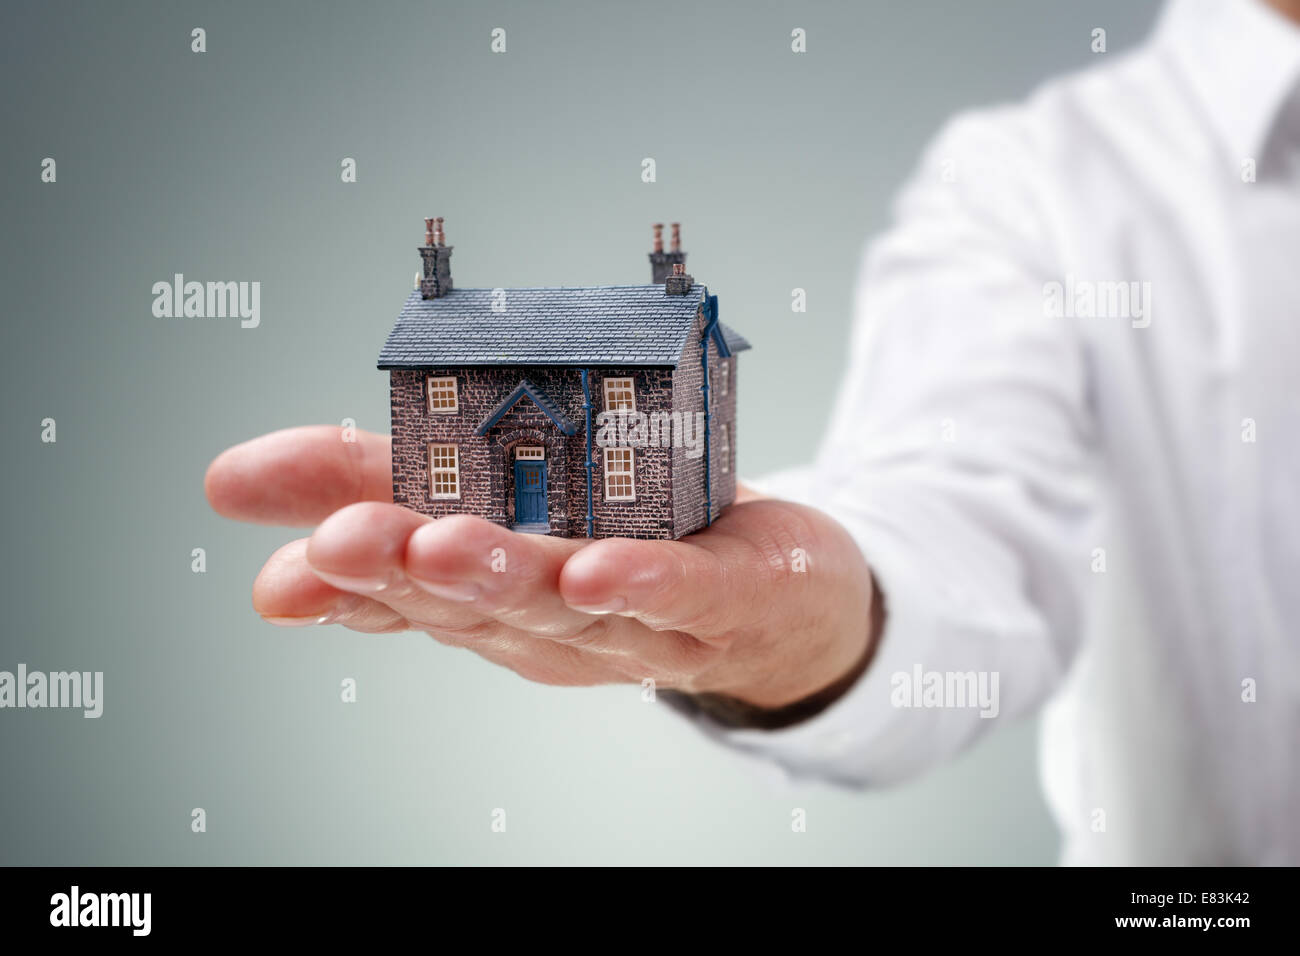 Immobilien Stockbild